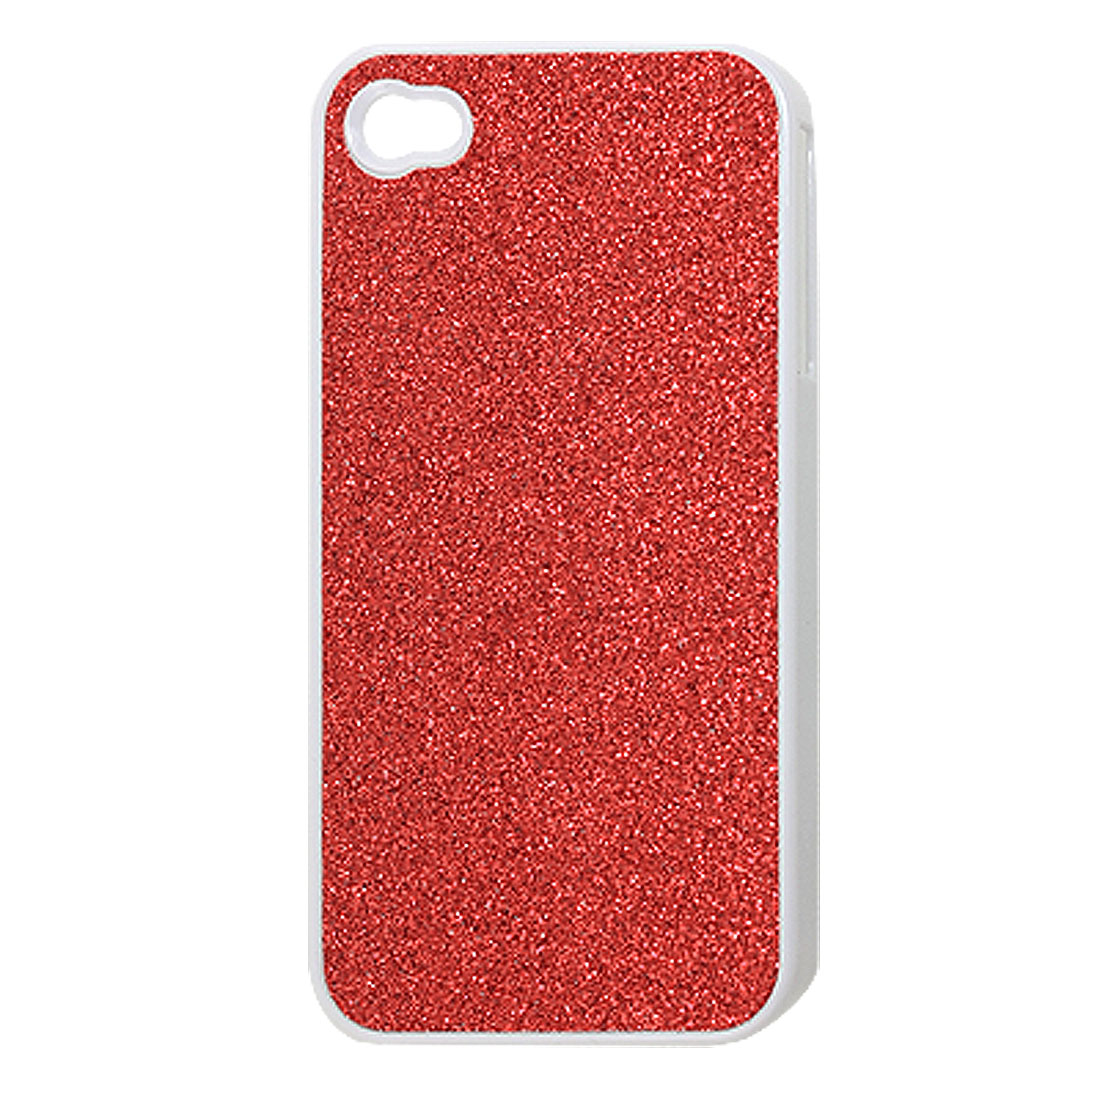 Plastic Red Glitter Powder Coated Back Case Cover for iPhone 4 4G 4S